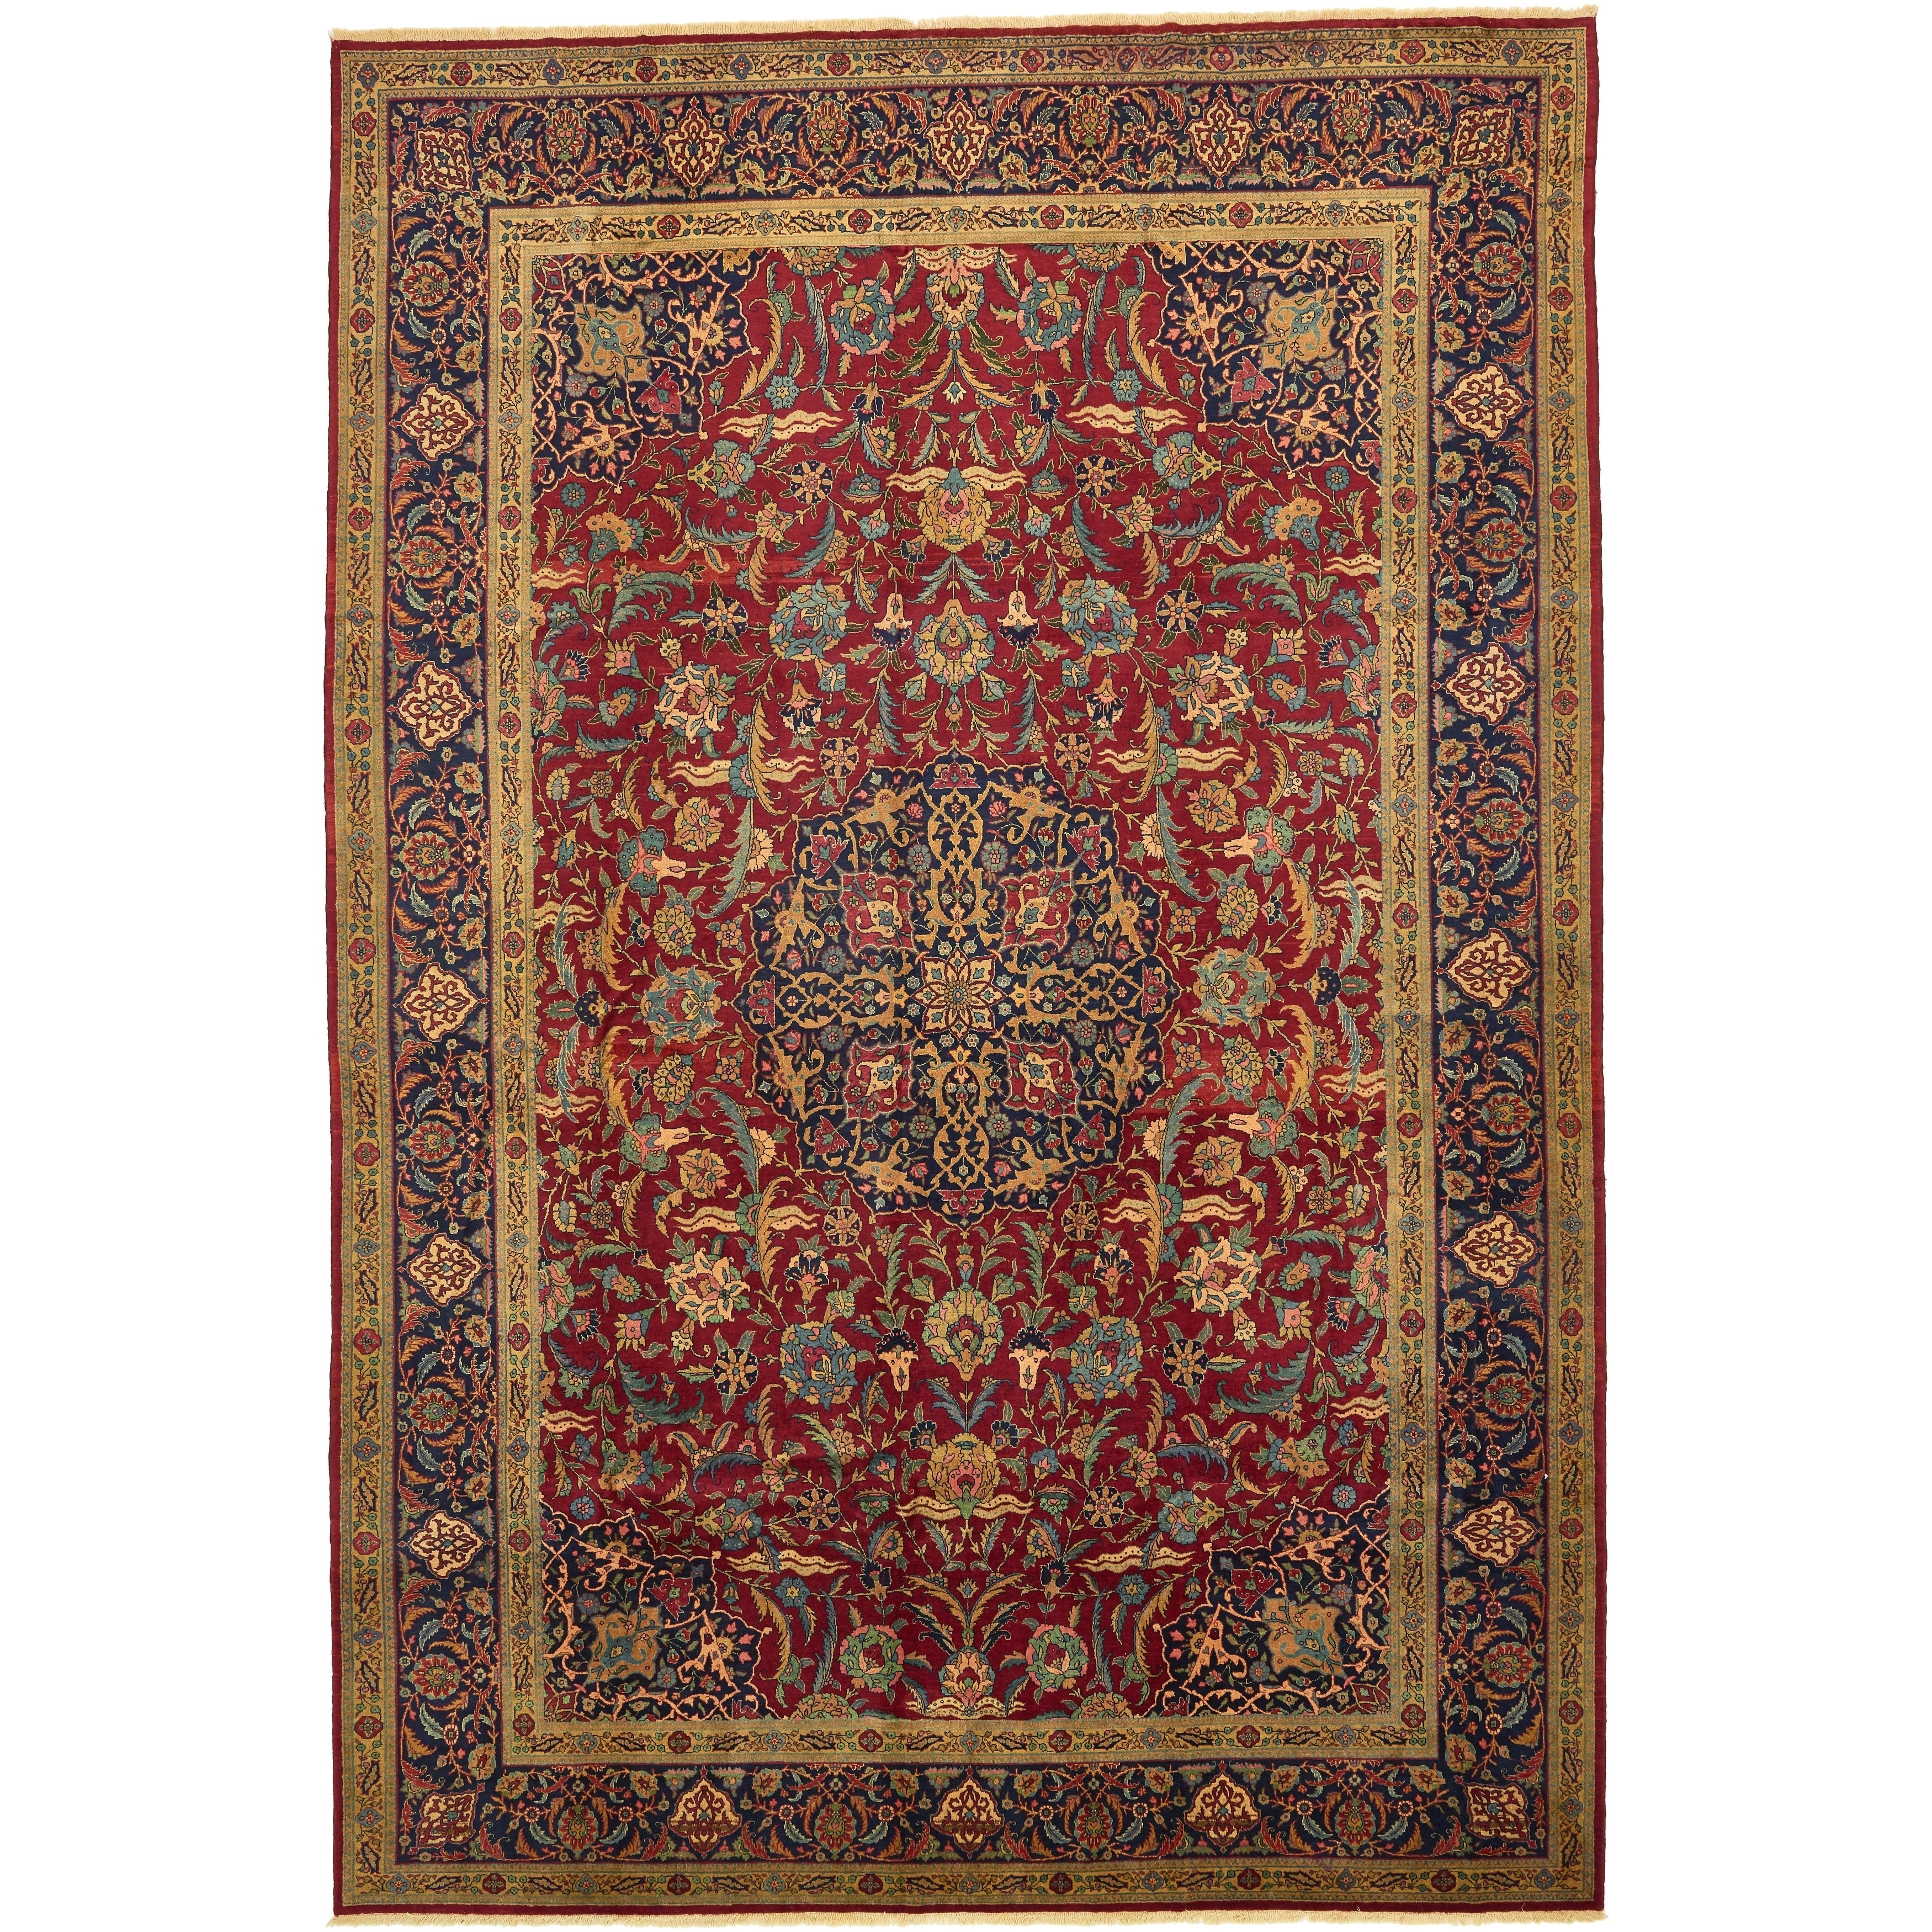 Hand Knotted Kashan Semi Antique Wool Area Rug - 11 x 16 6 (Red - 11 x 16 6)